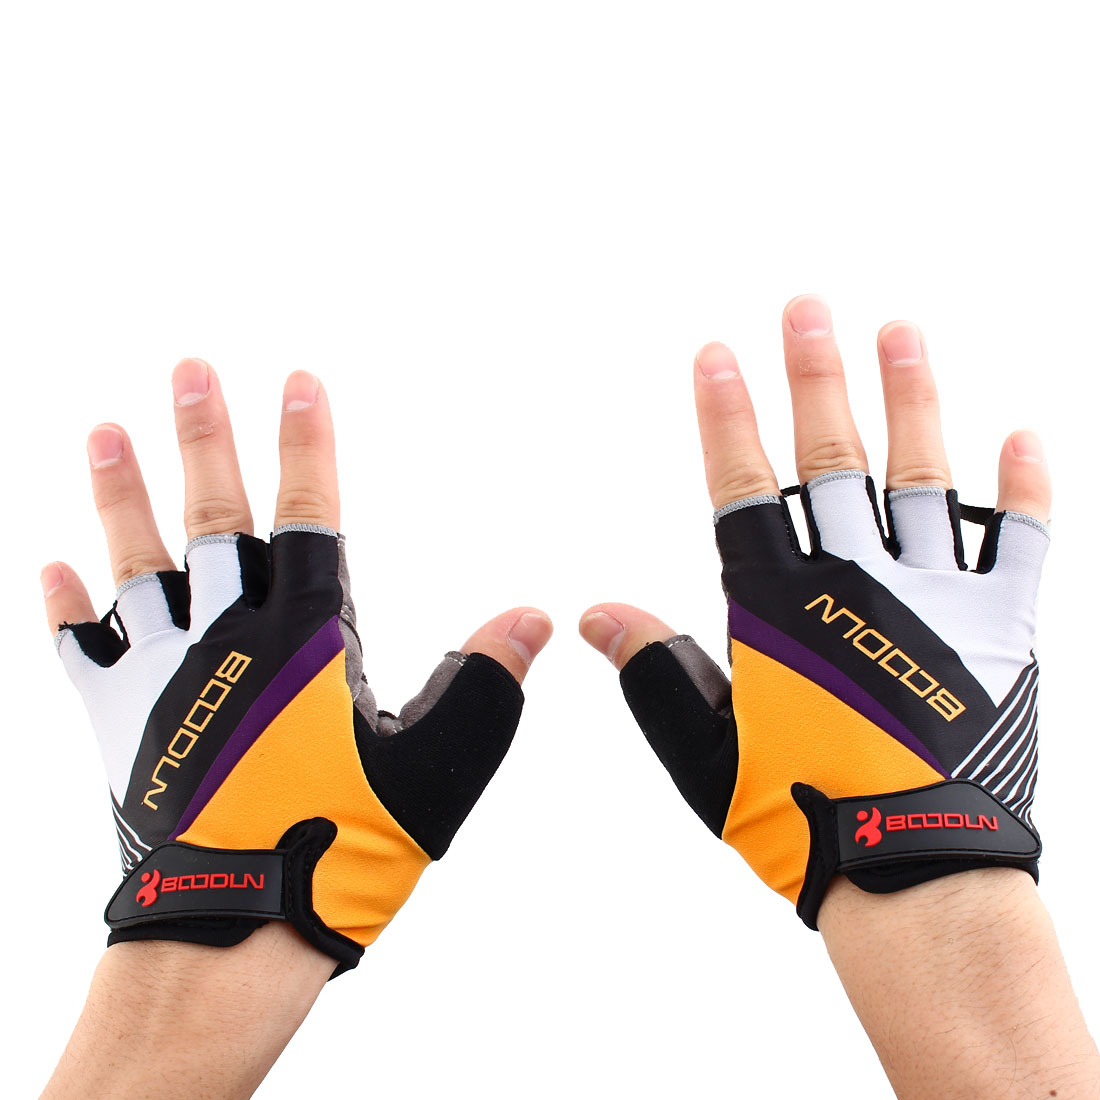 BOODUN Authorized Unisex Exercise Sports Cycling Fitness Half Finger Palm Support Gloves Yellow Size XXL Pair